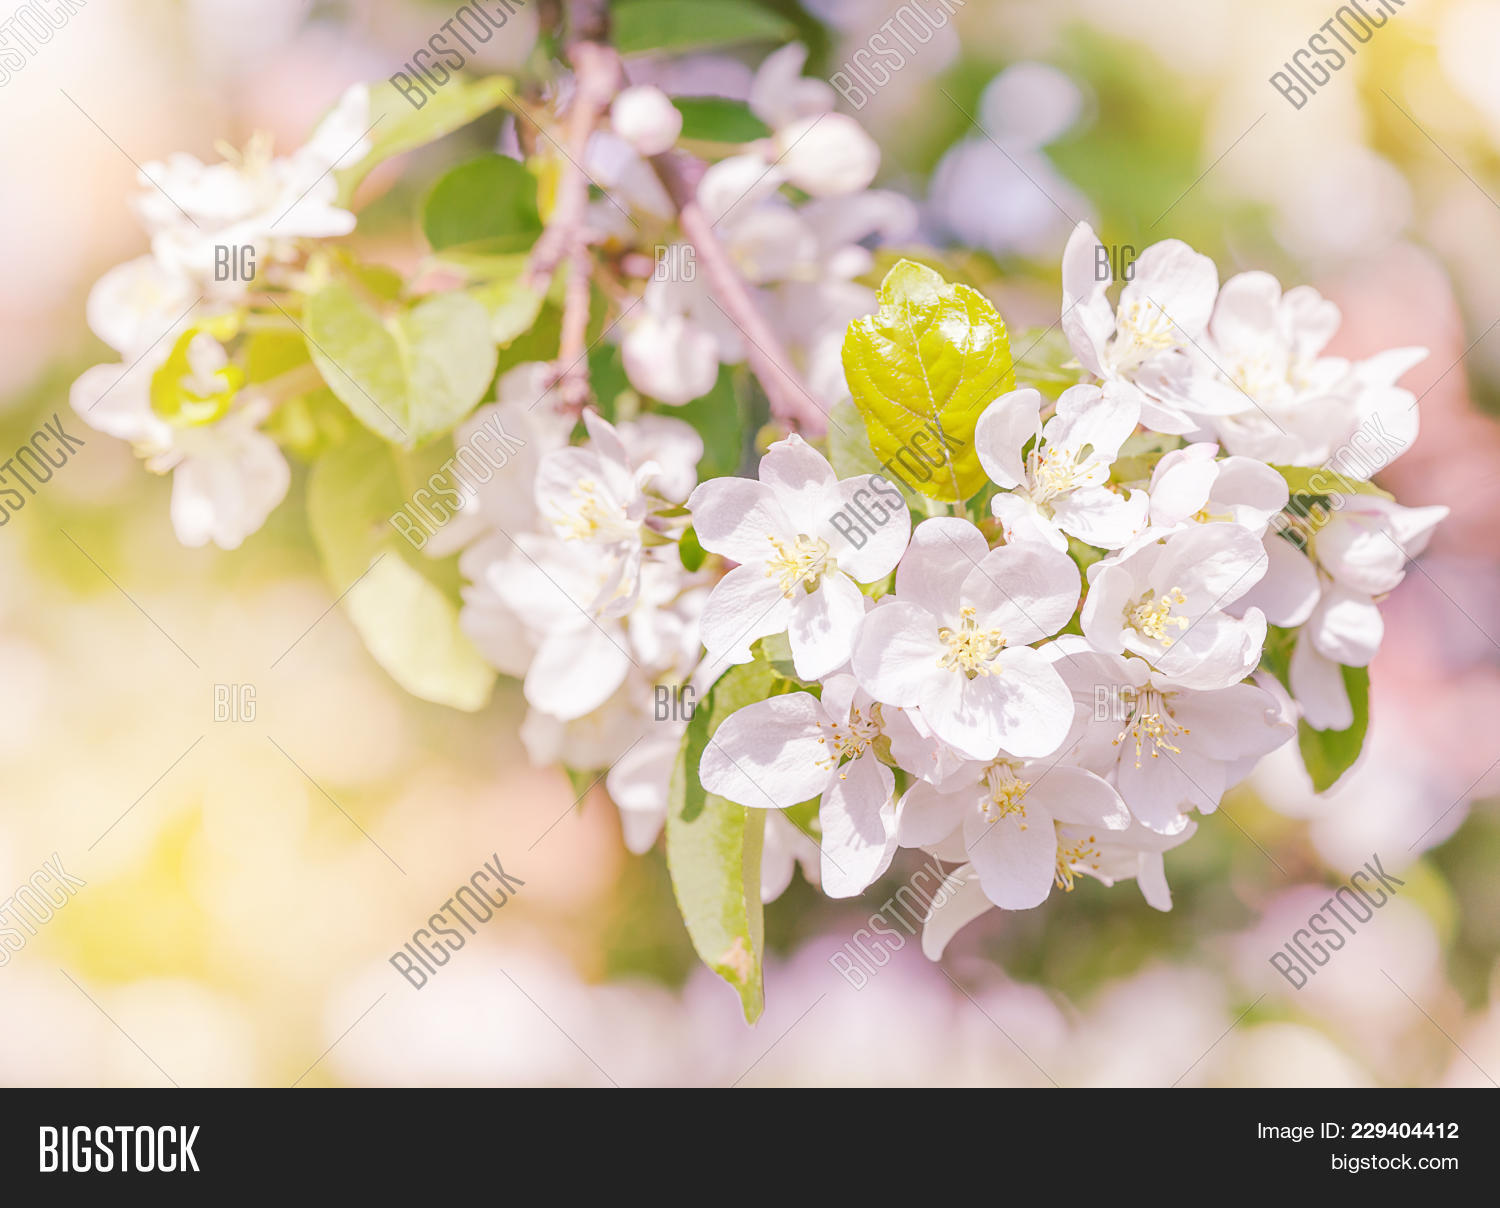 Delicate White Flowers Image Photo Free Trial Bigstock